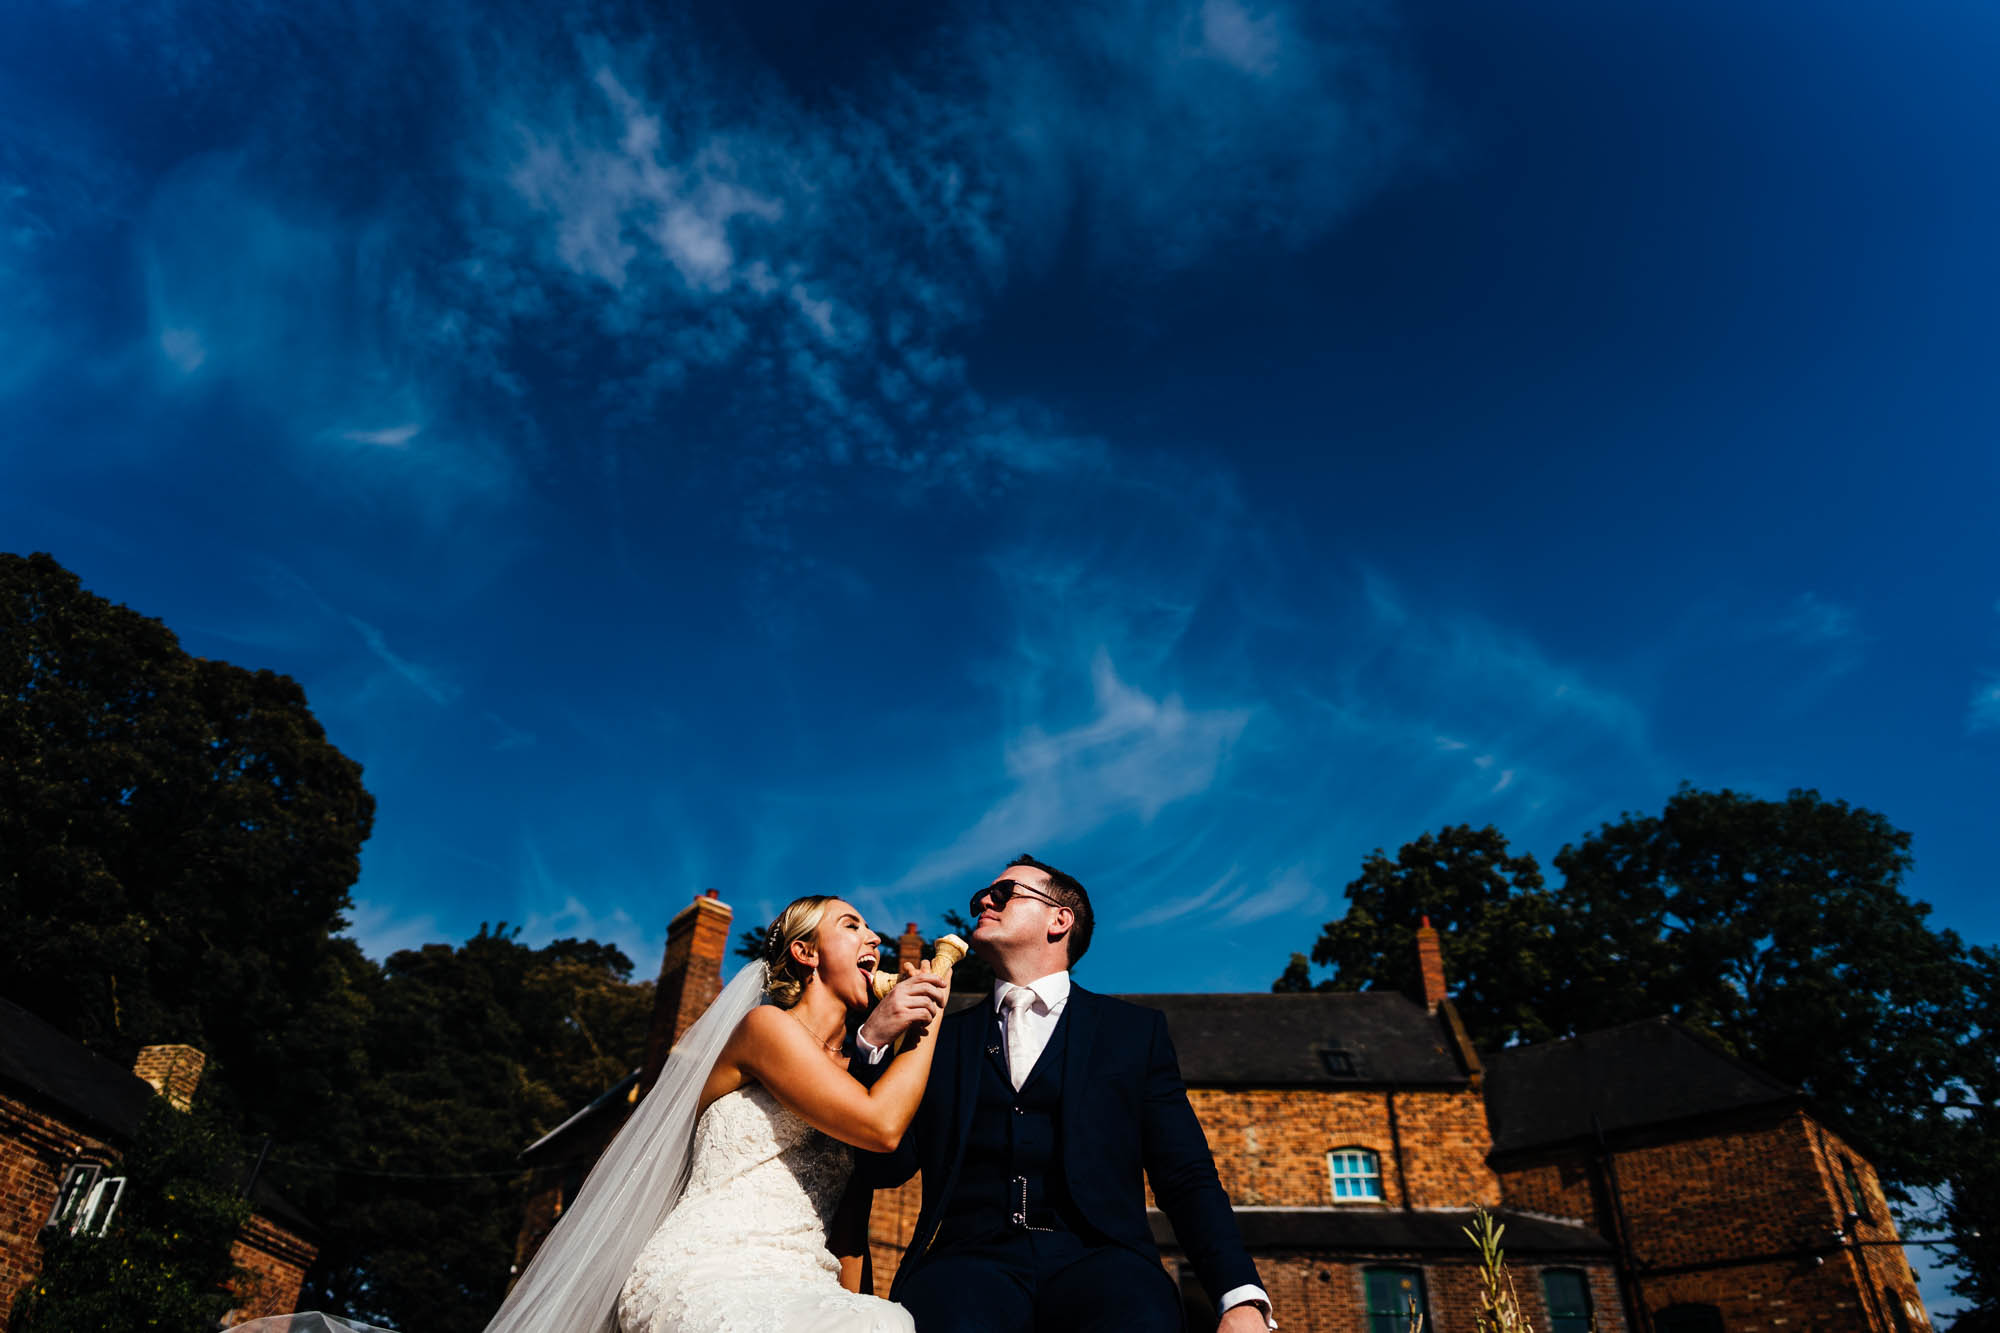 wedding-at-the-barns-at-hunsbury-hill-48